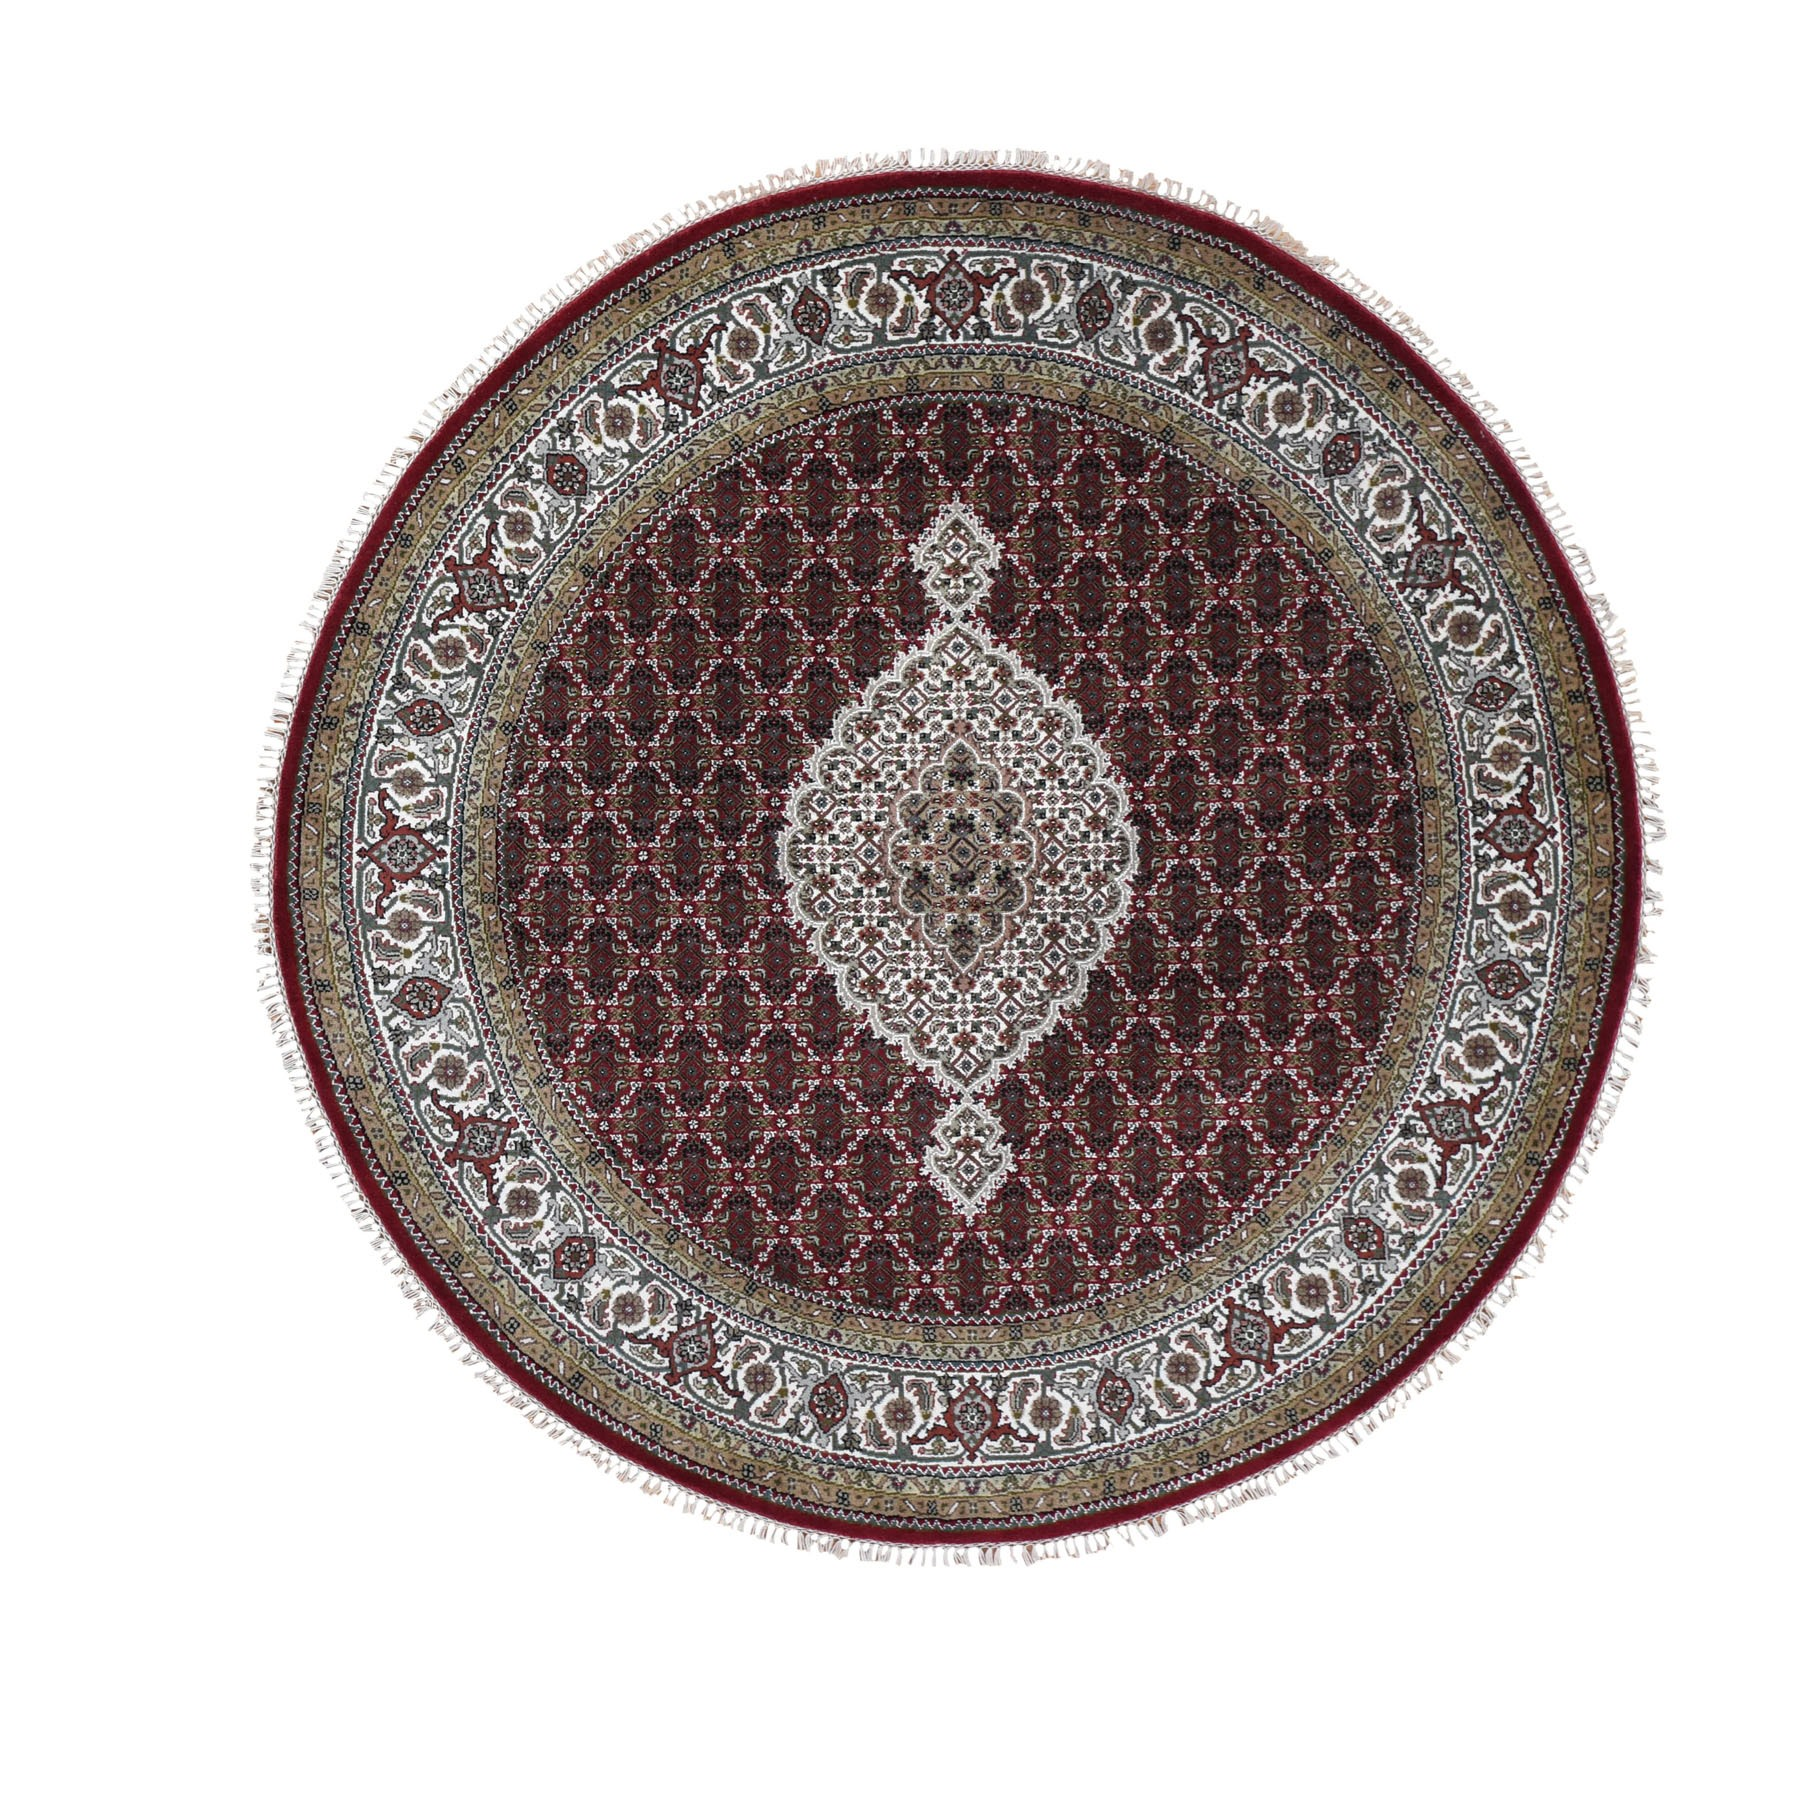 Pirniakan Collection Hand Knotted Red Rug No: 196170